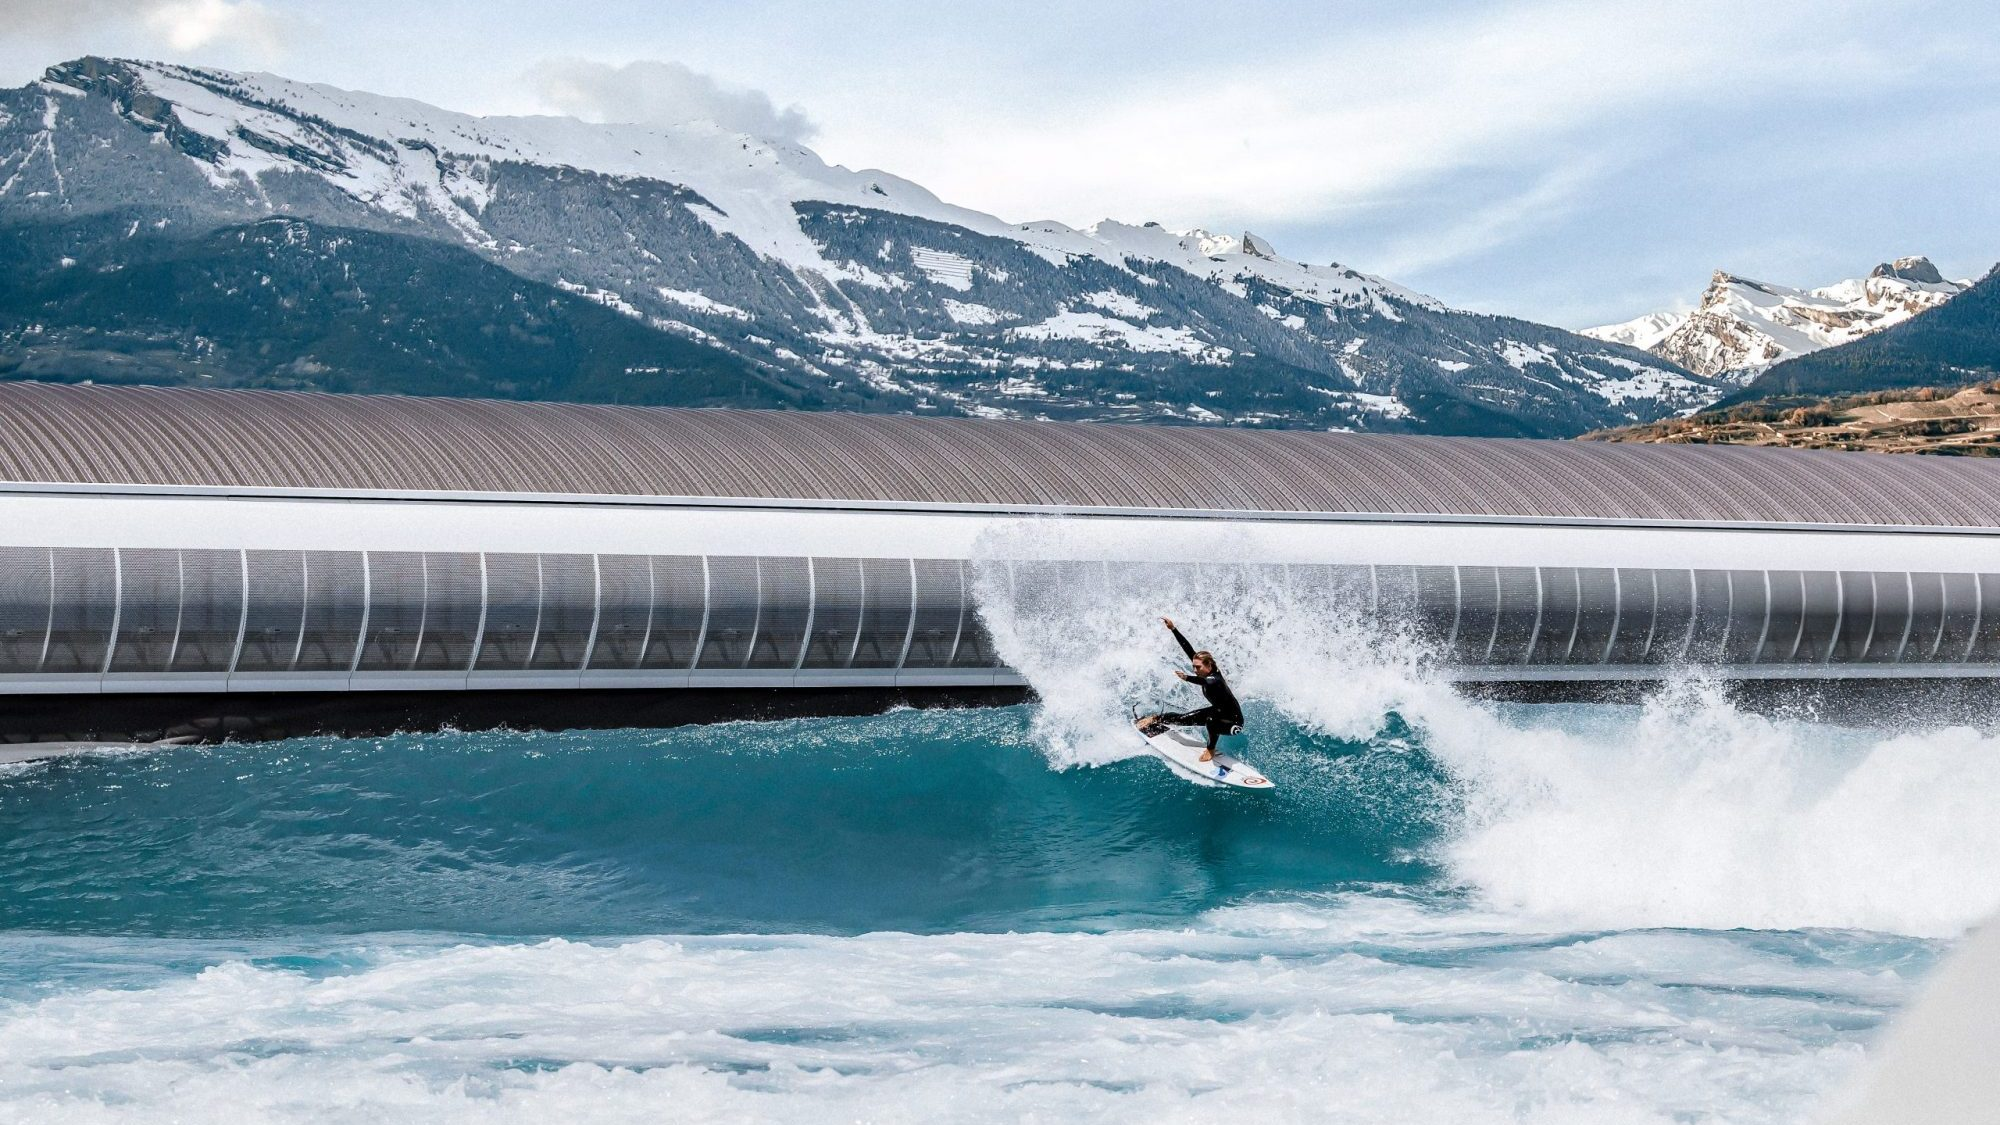 alaia bay wave pool artist rendering